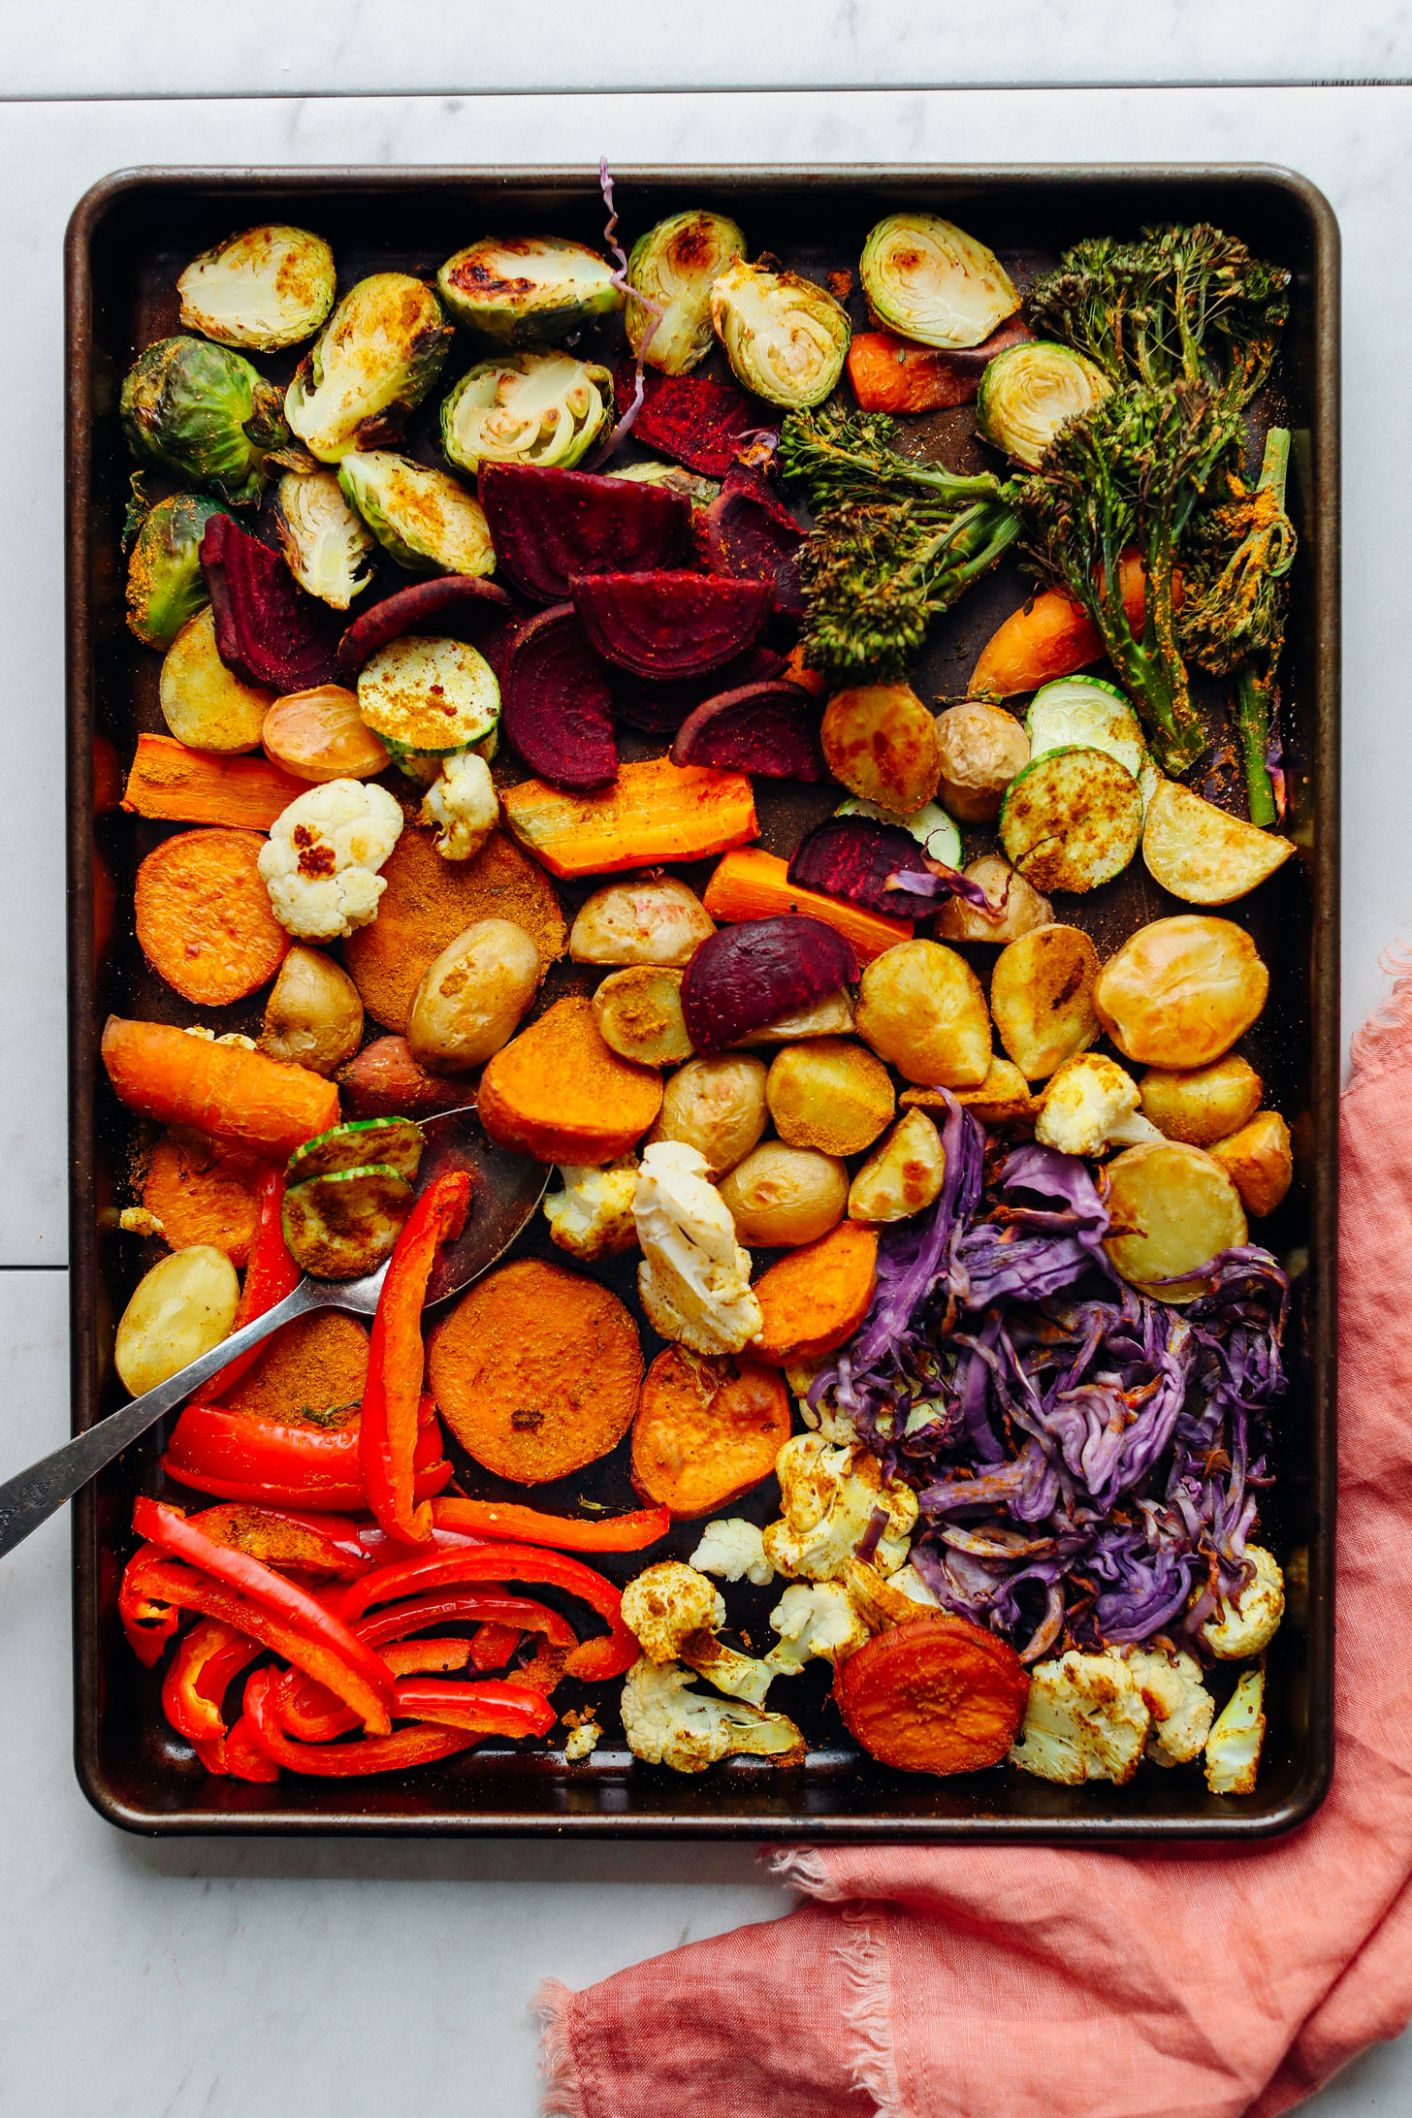 Oil-Free Roasted Vegetables - Vegetable Recipes No Oil